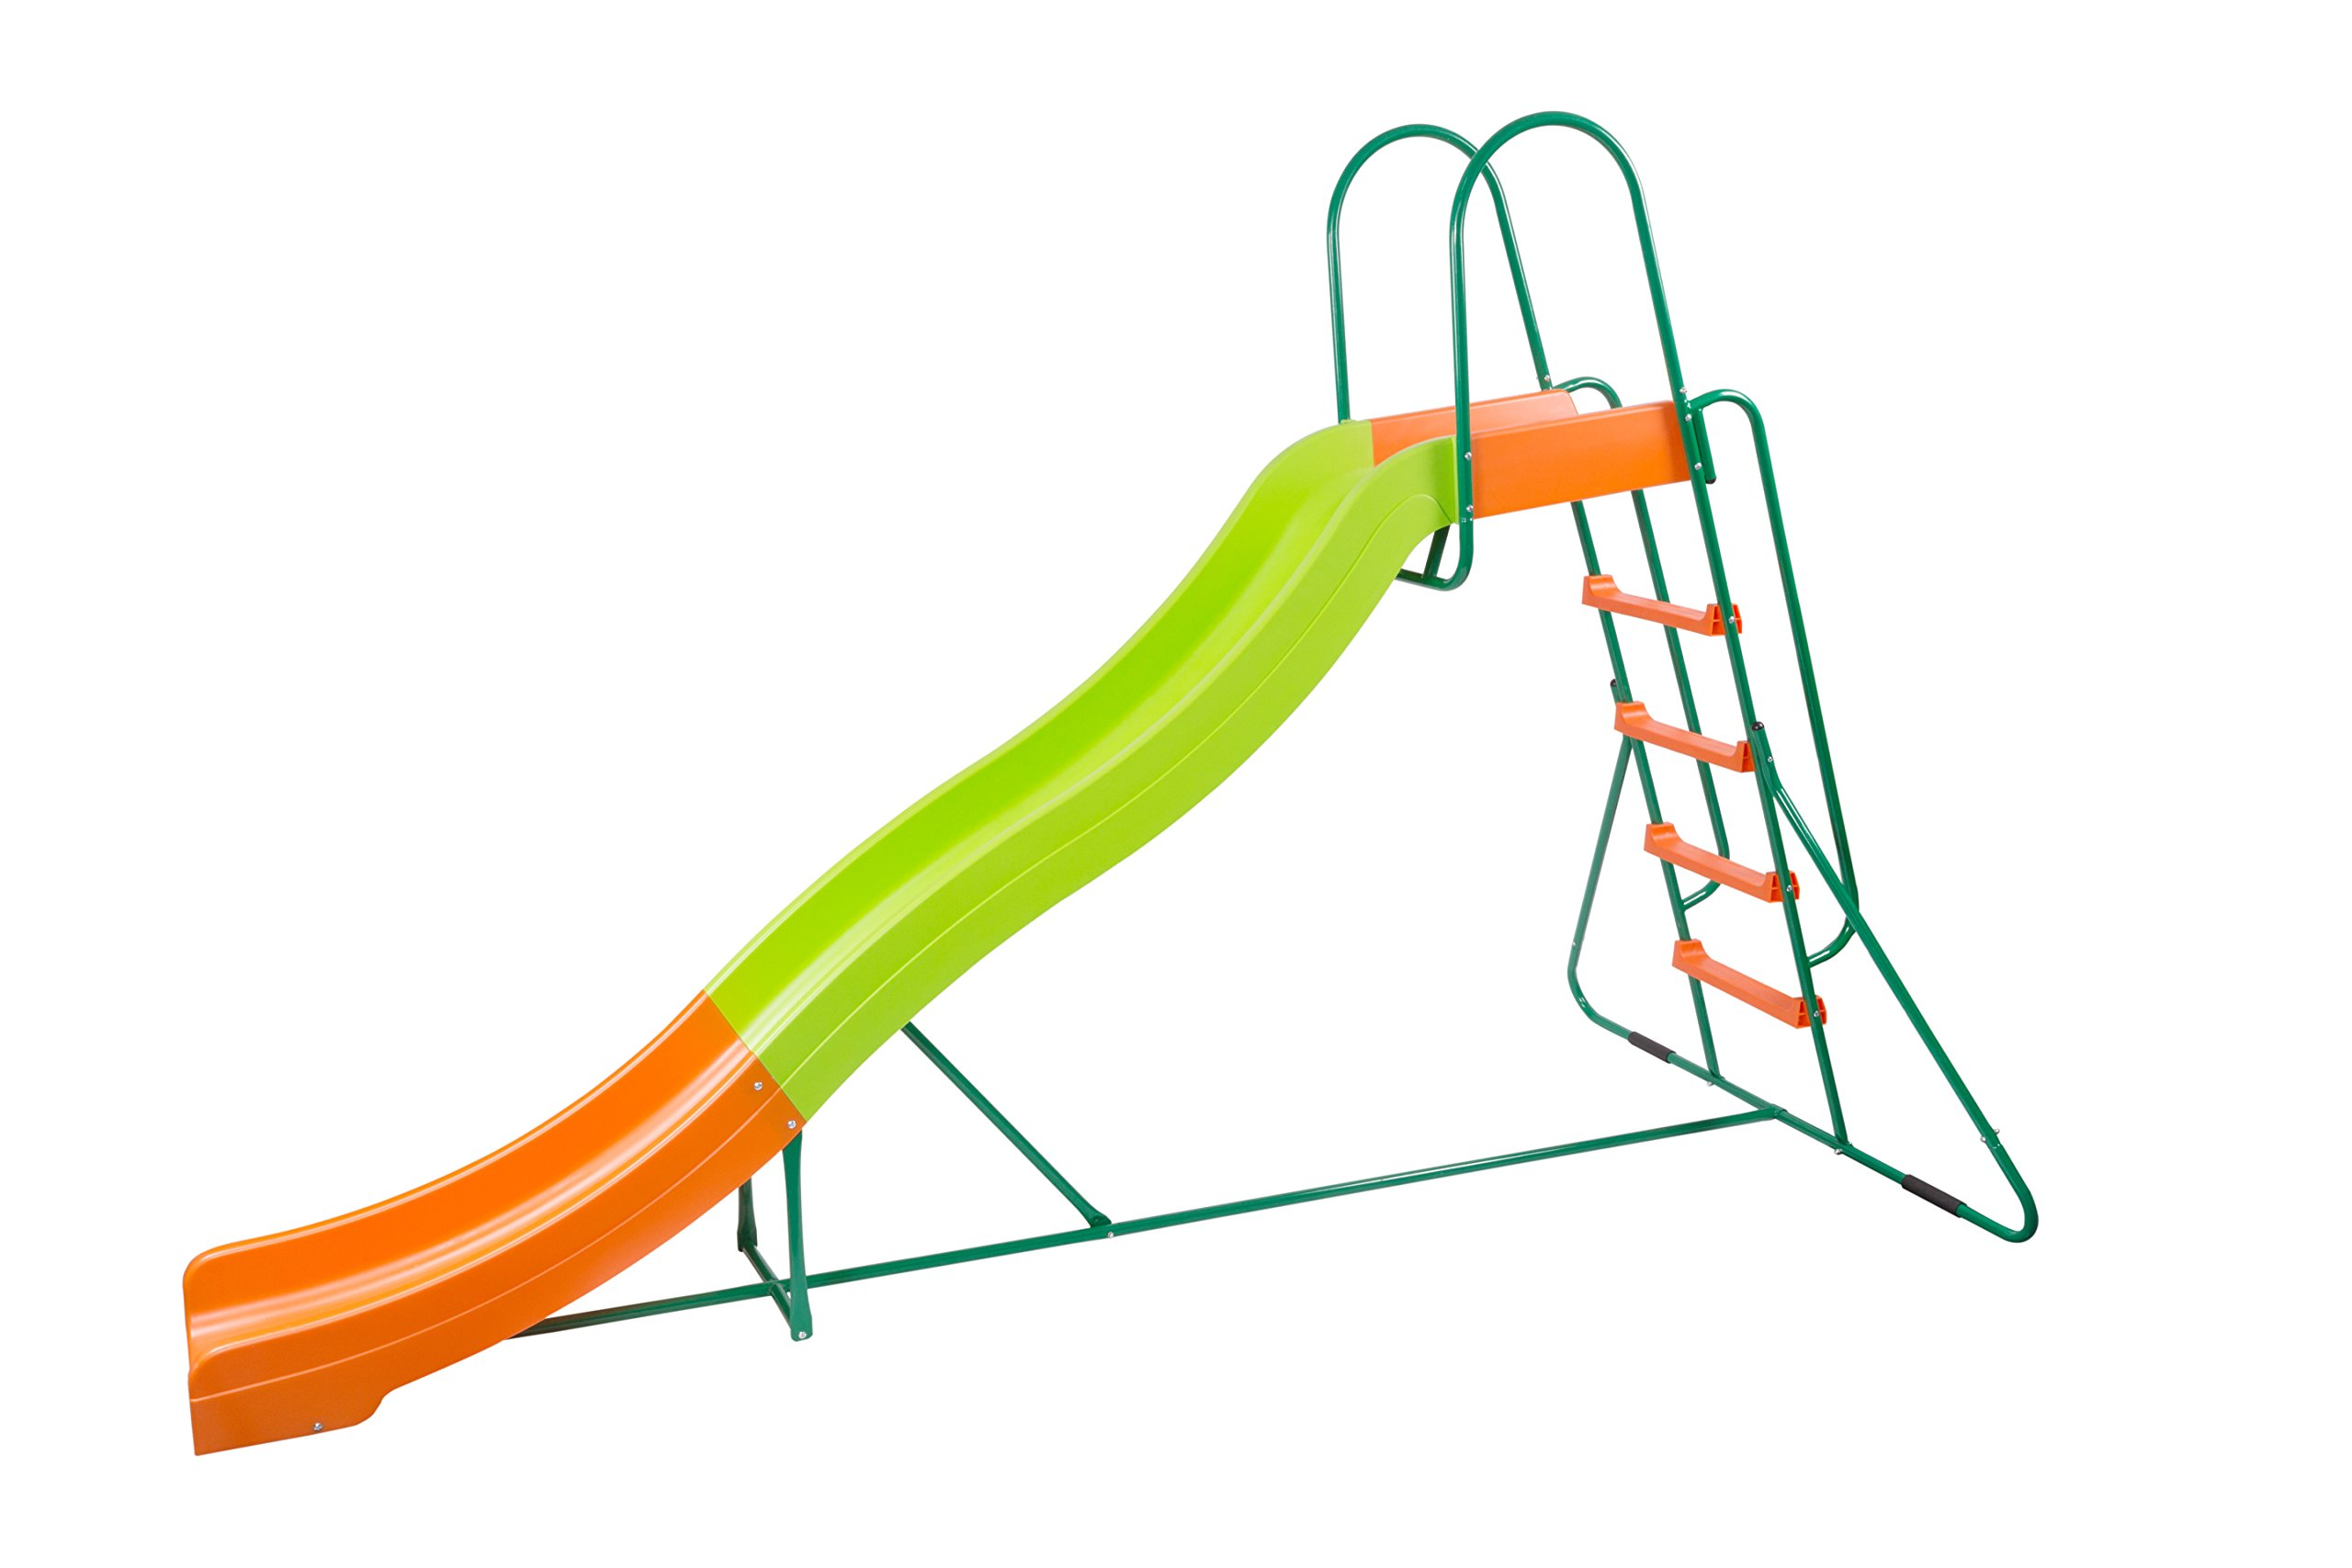 Platports Home Playground Equipment: 10' Indoor/Outdoor Wavy Slide, Ages 3 to 10 by PLATPORTS